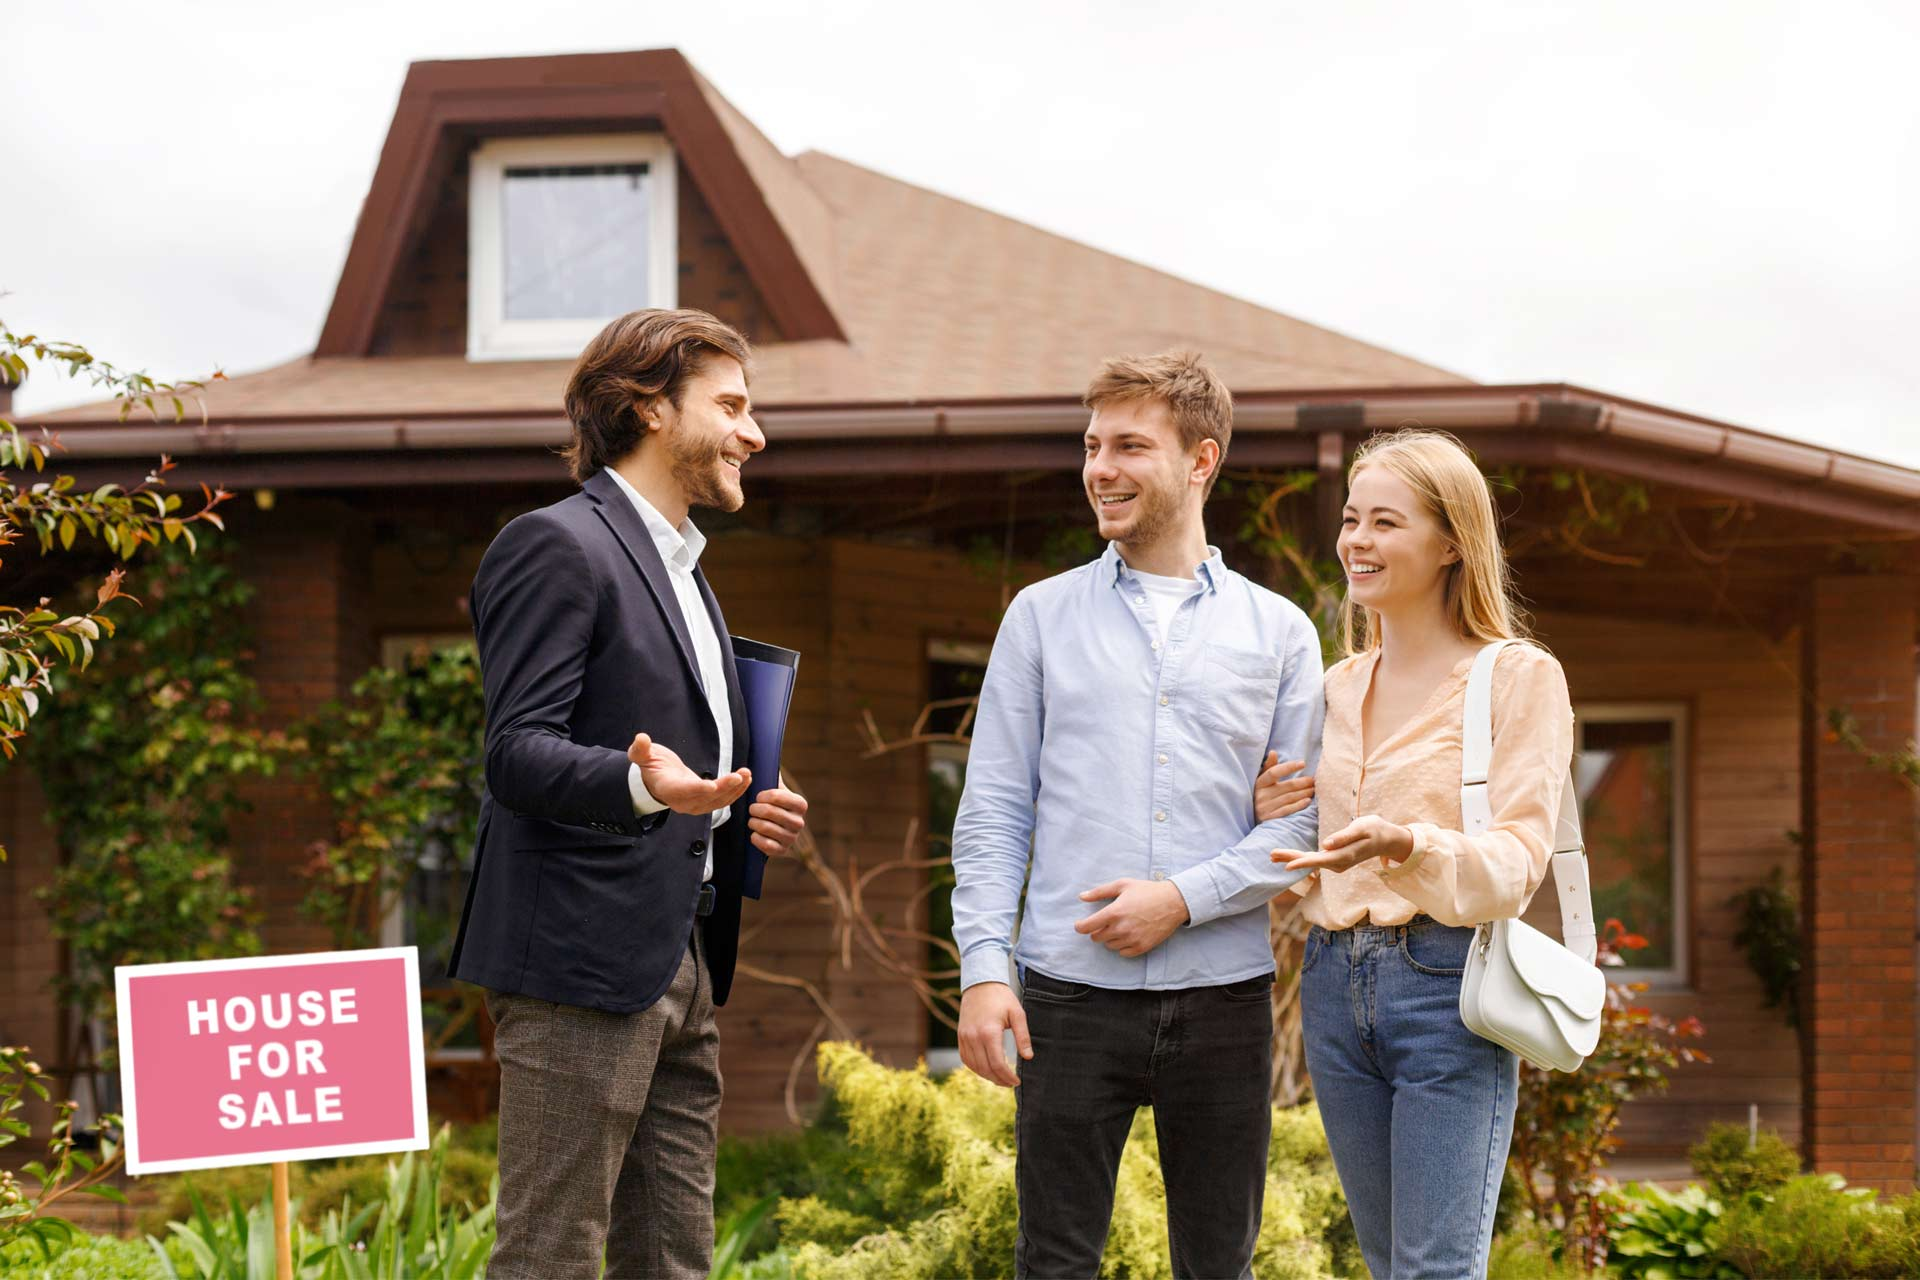 5 Things You Should Consider Before Making An Offer